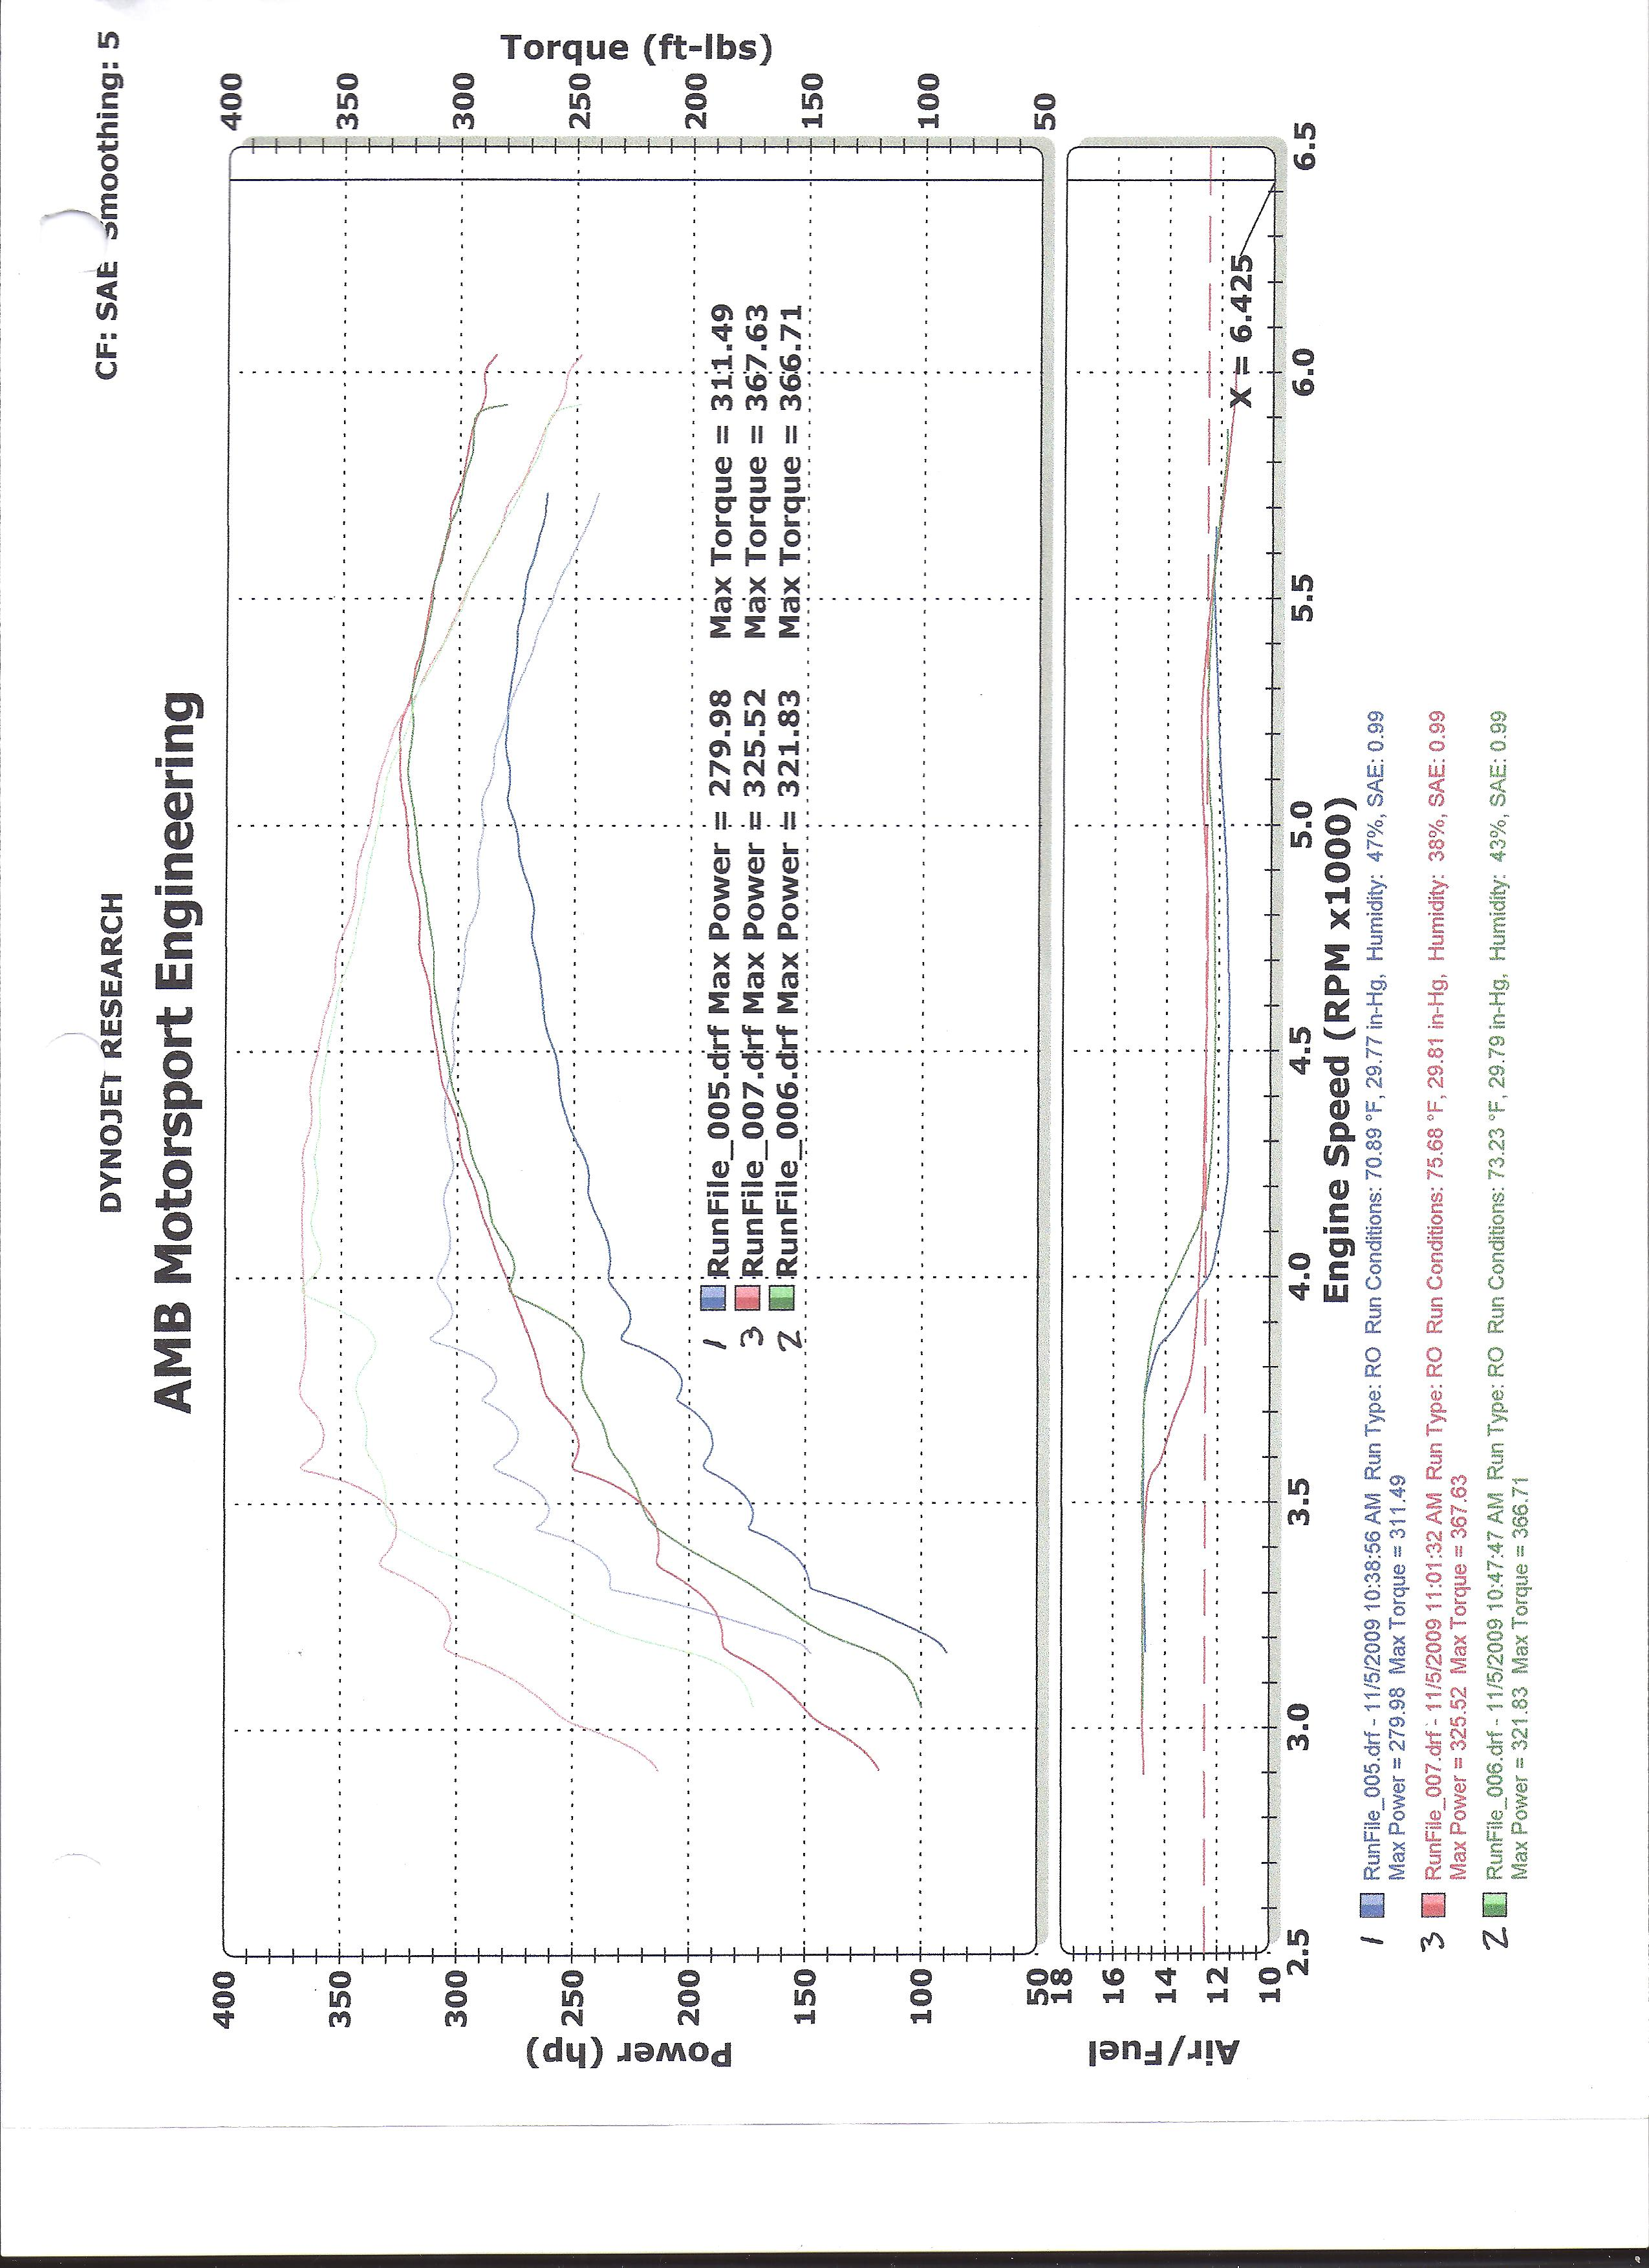 2006 Dodge Charger R/T Dyno Results Graph